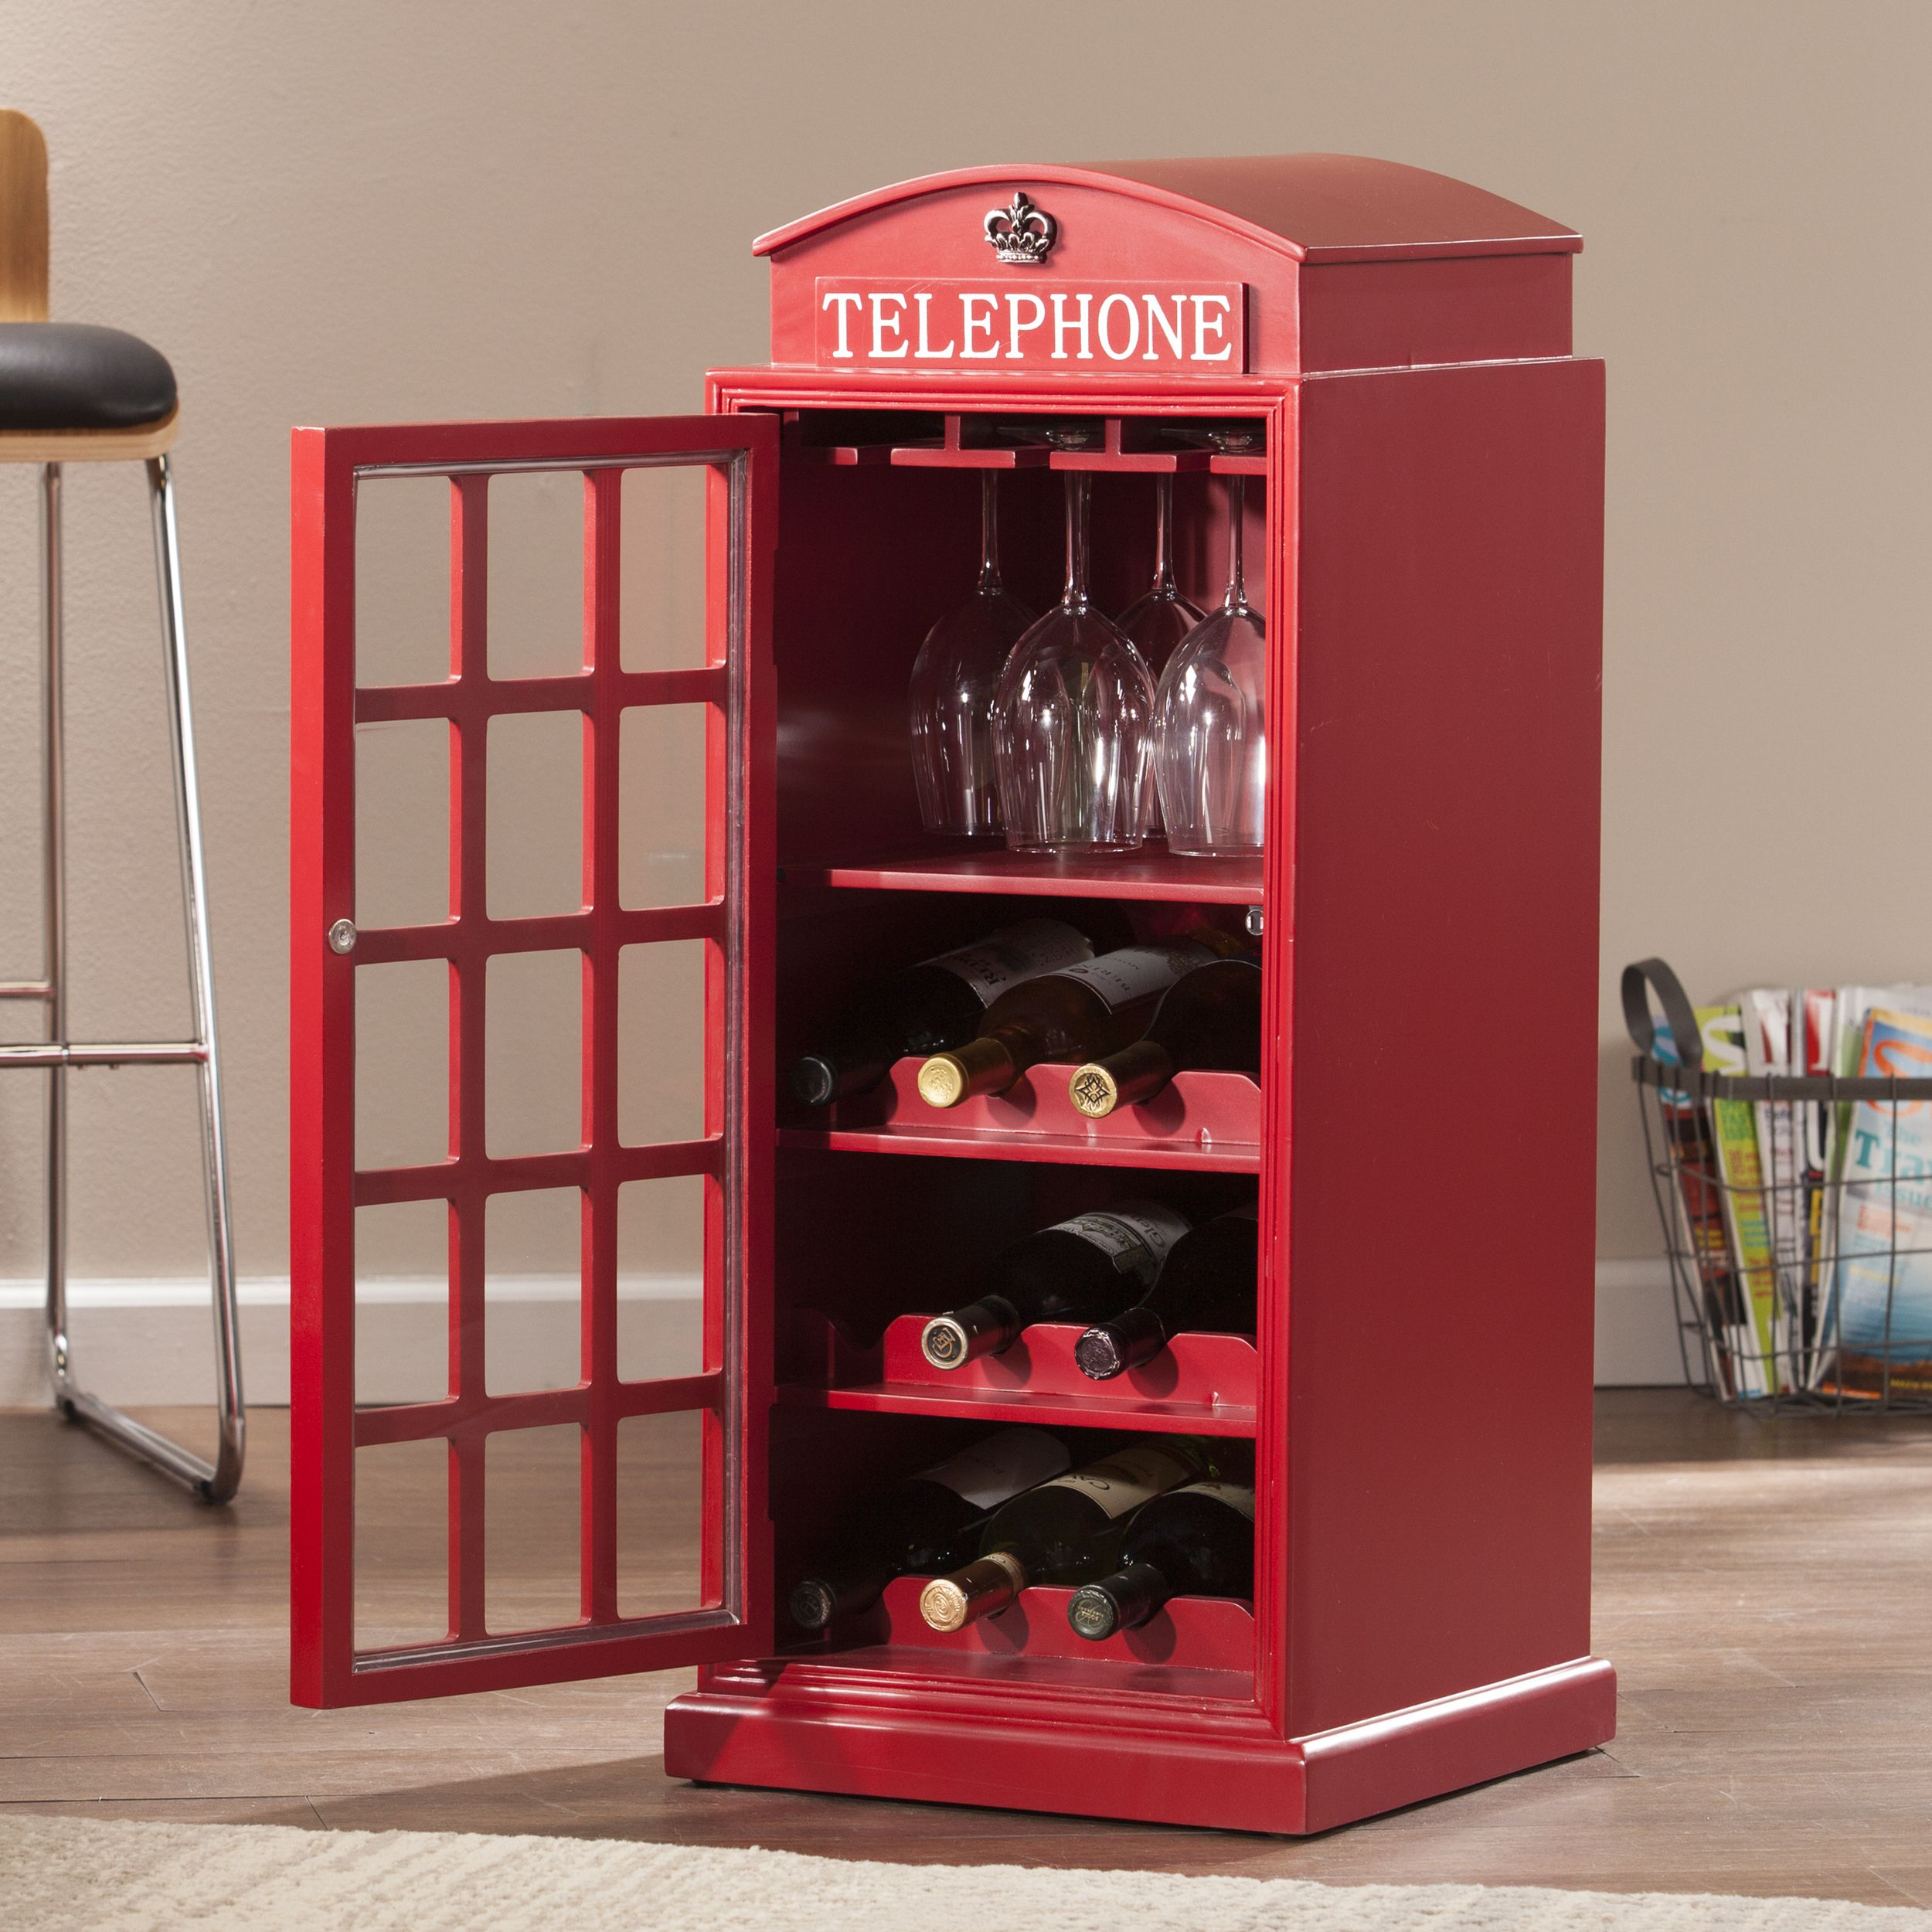 Take Your Wine Collection To The Next Level With The Best Selling Franklin Phone Booth Wine Cabinet N London Phone Booth Wine Cabinets Media Storage Cabinet